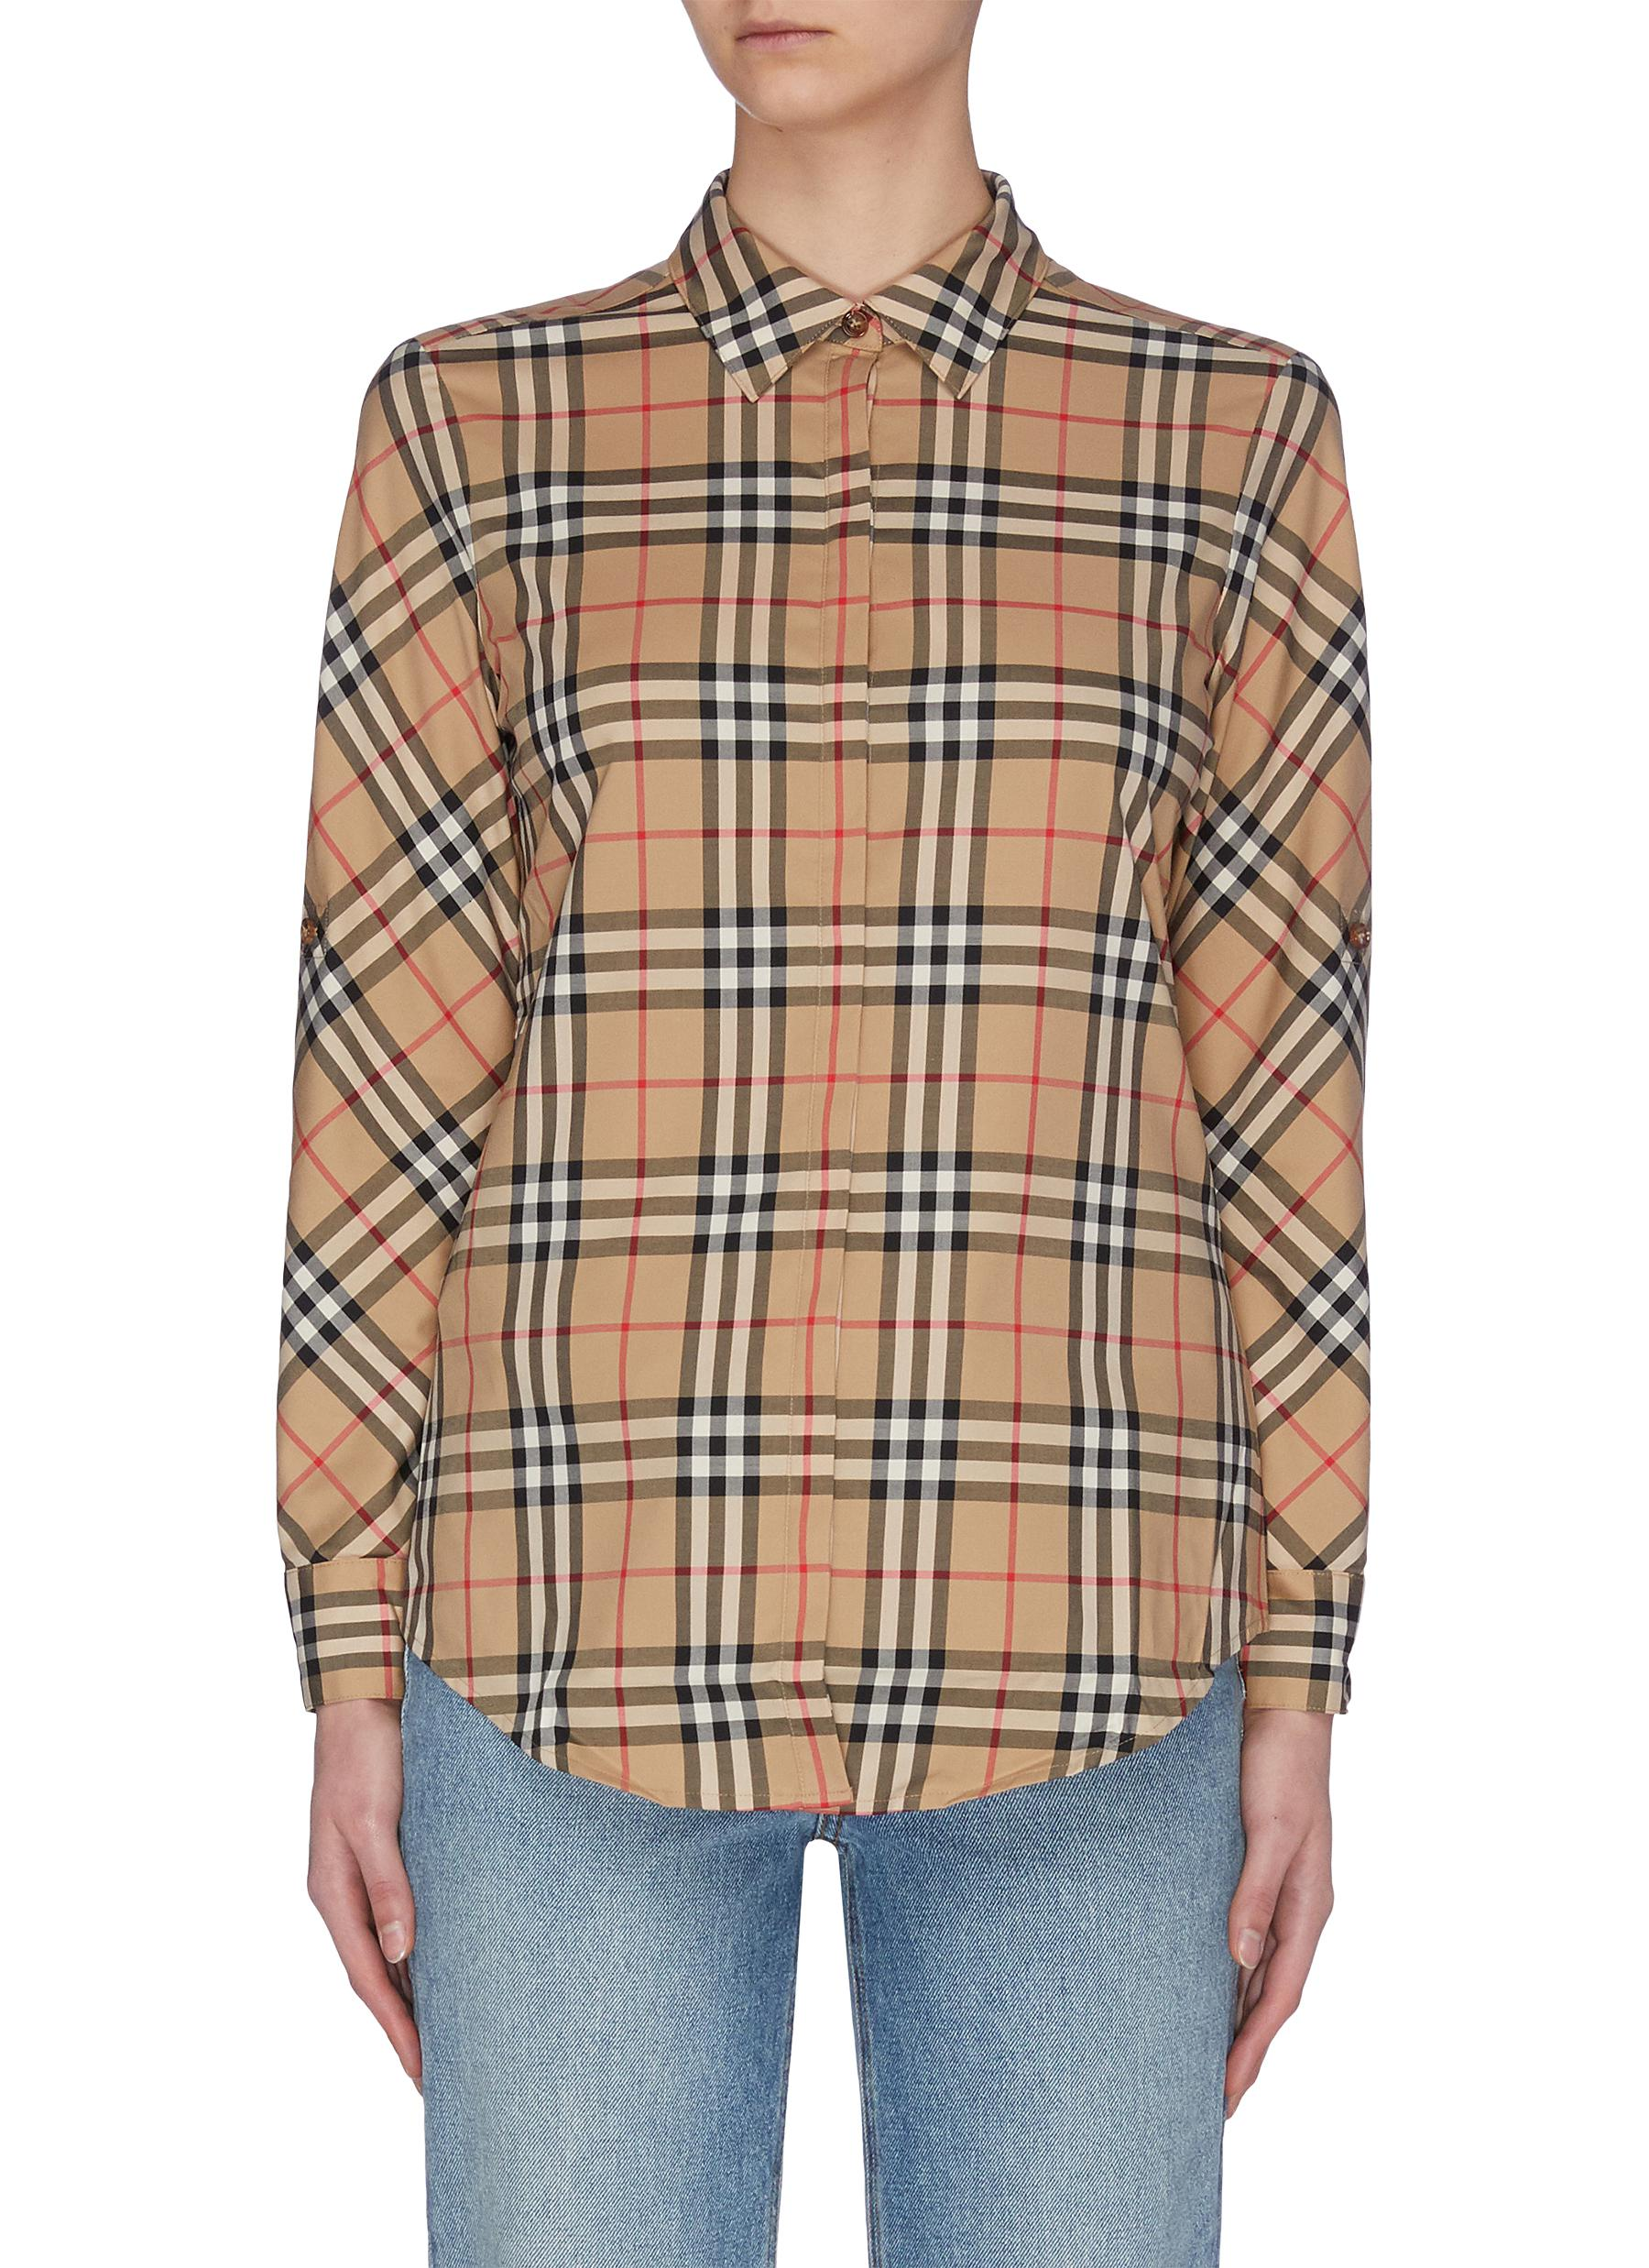 Buy Burberry Tops 'Archive' check shirt